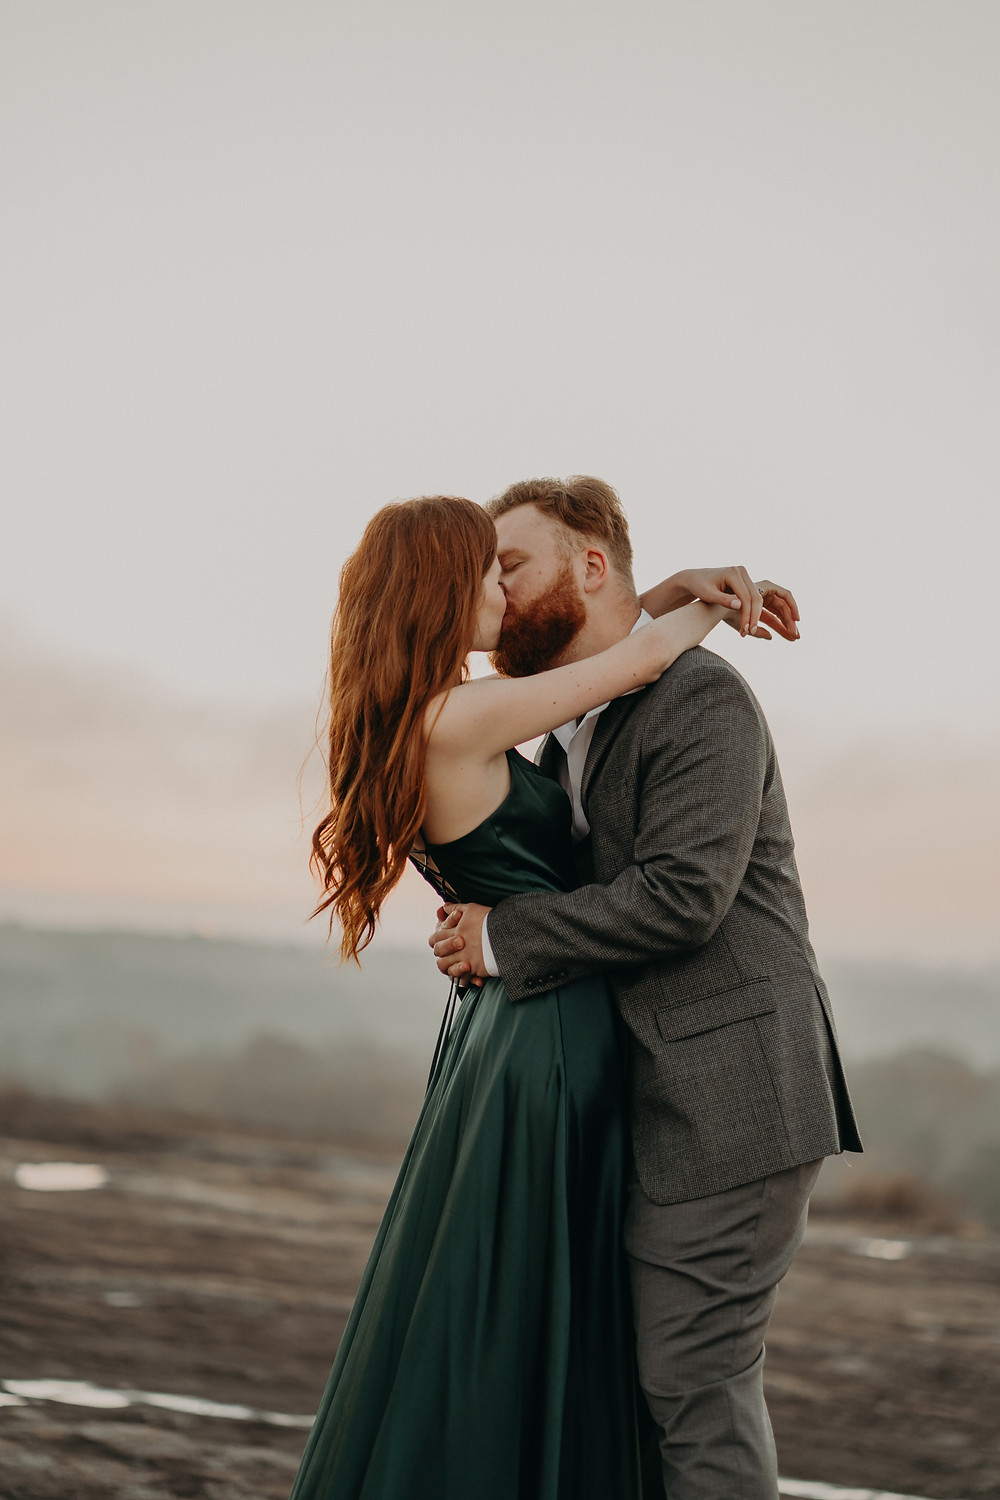 red-haired bride wearing a long green satin dress and groom in a suit kissing on top of the mountain at dawn